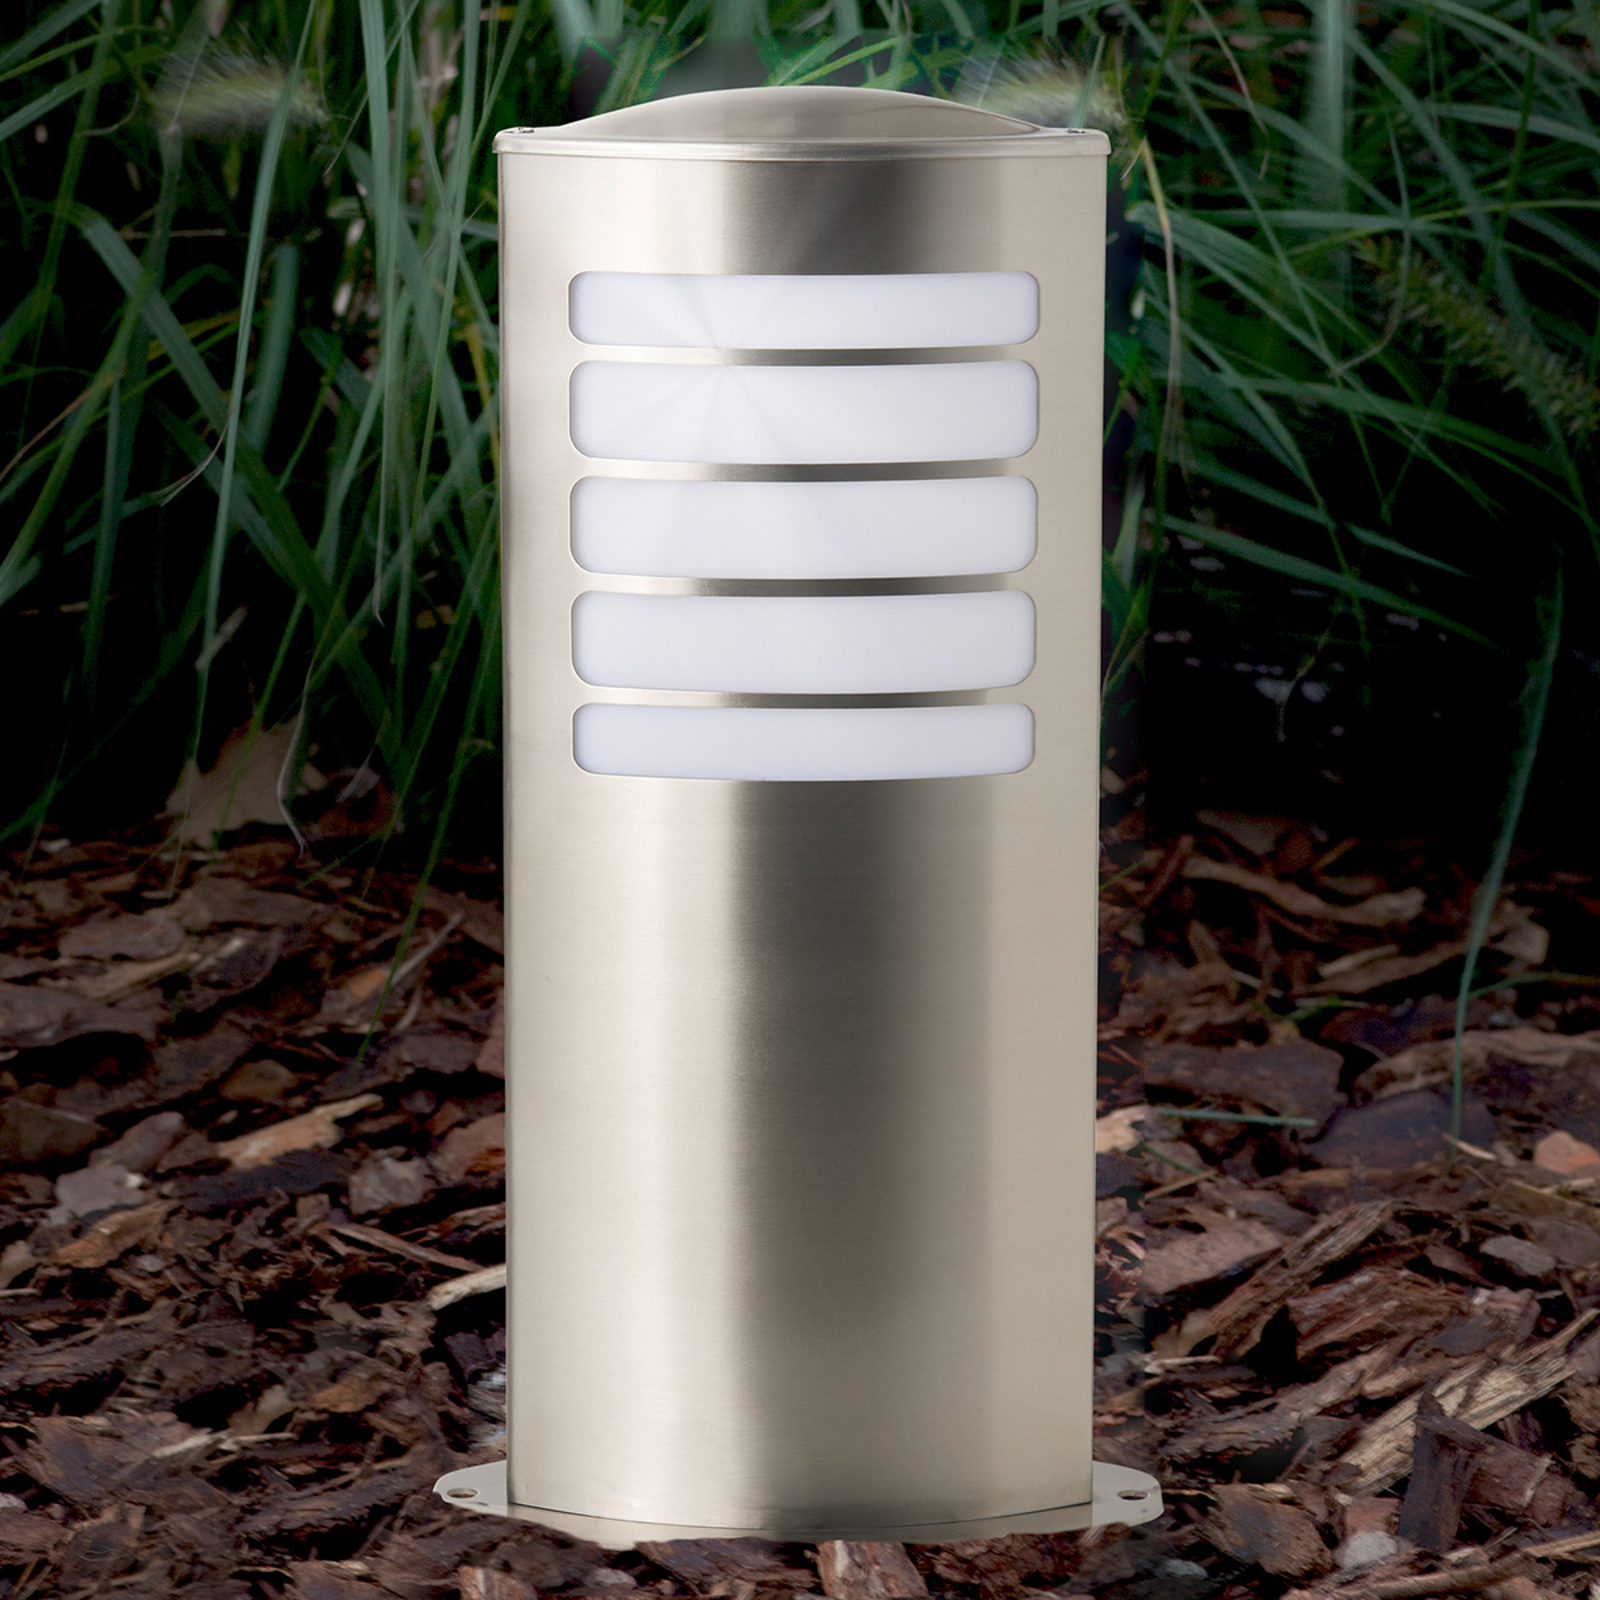 Todd oval pillar light made of stainless steel_1507251_1